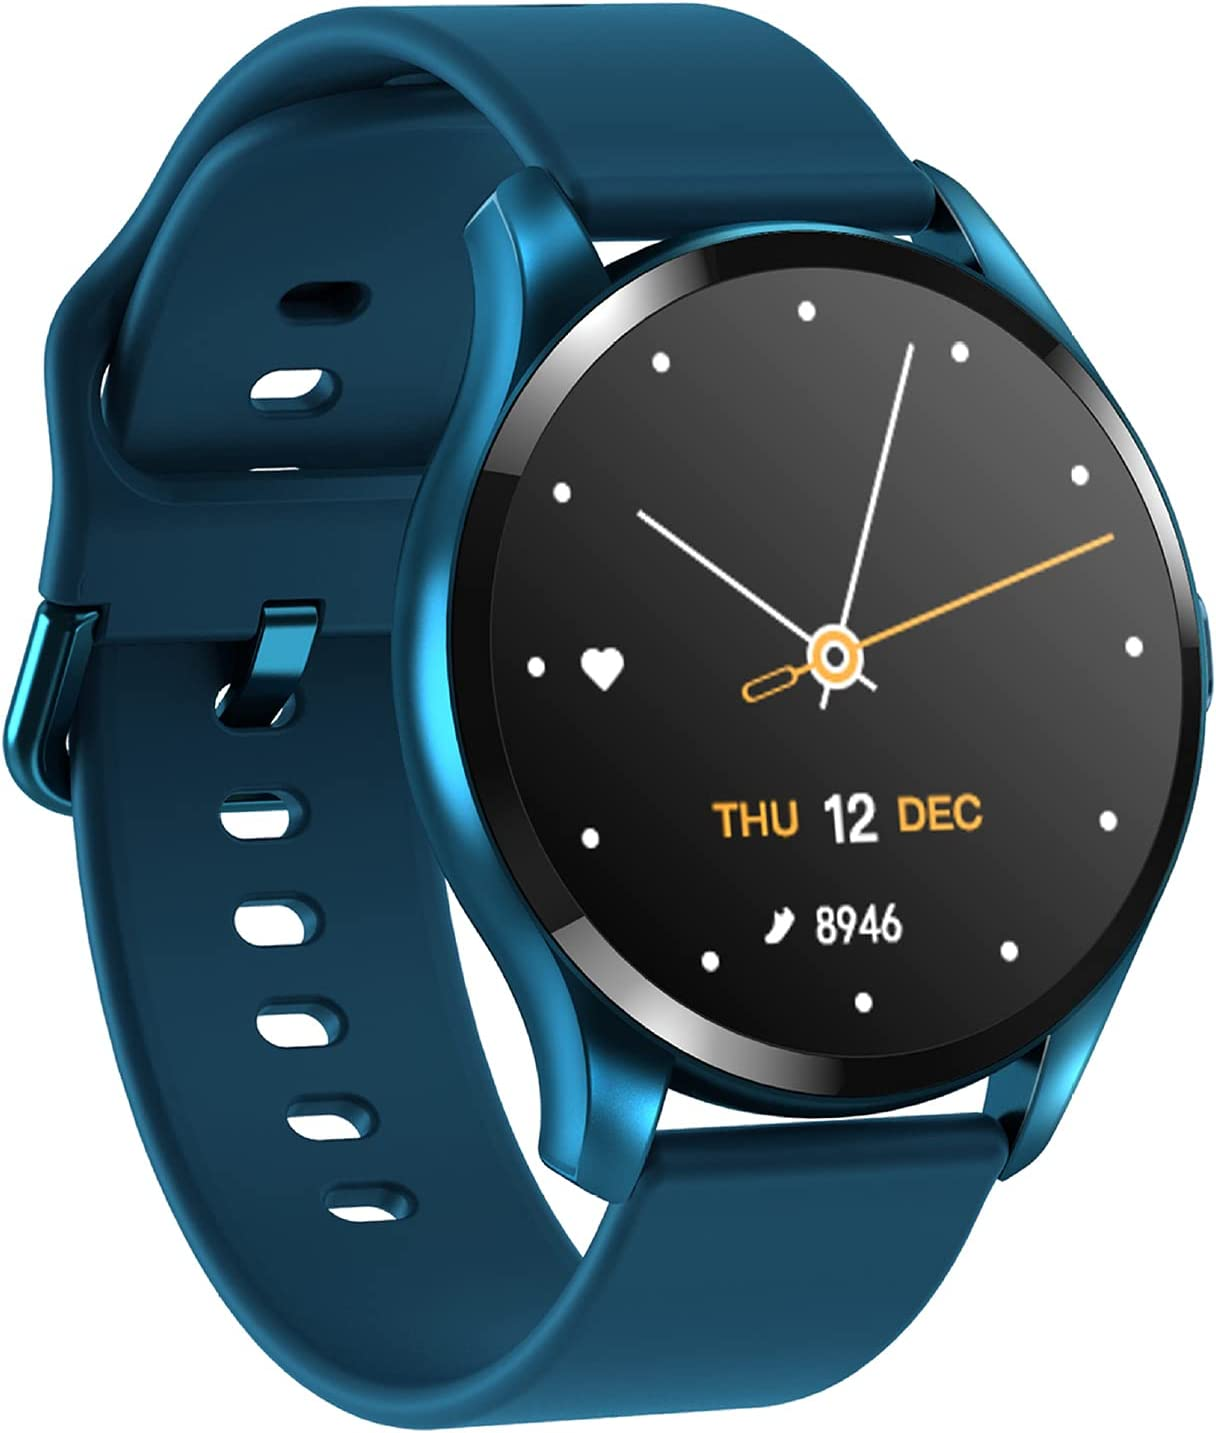 QFSLR Smart Watch Body online shopping Temperature Rate Sle Blood Heart Pressure Luxury